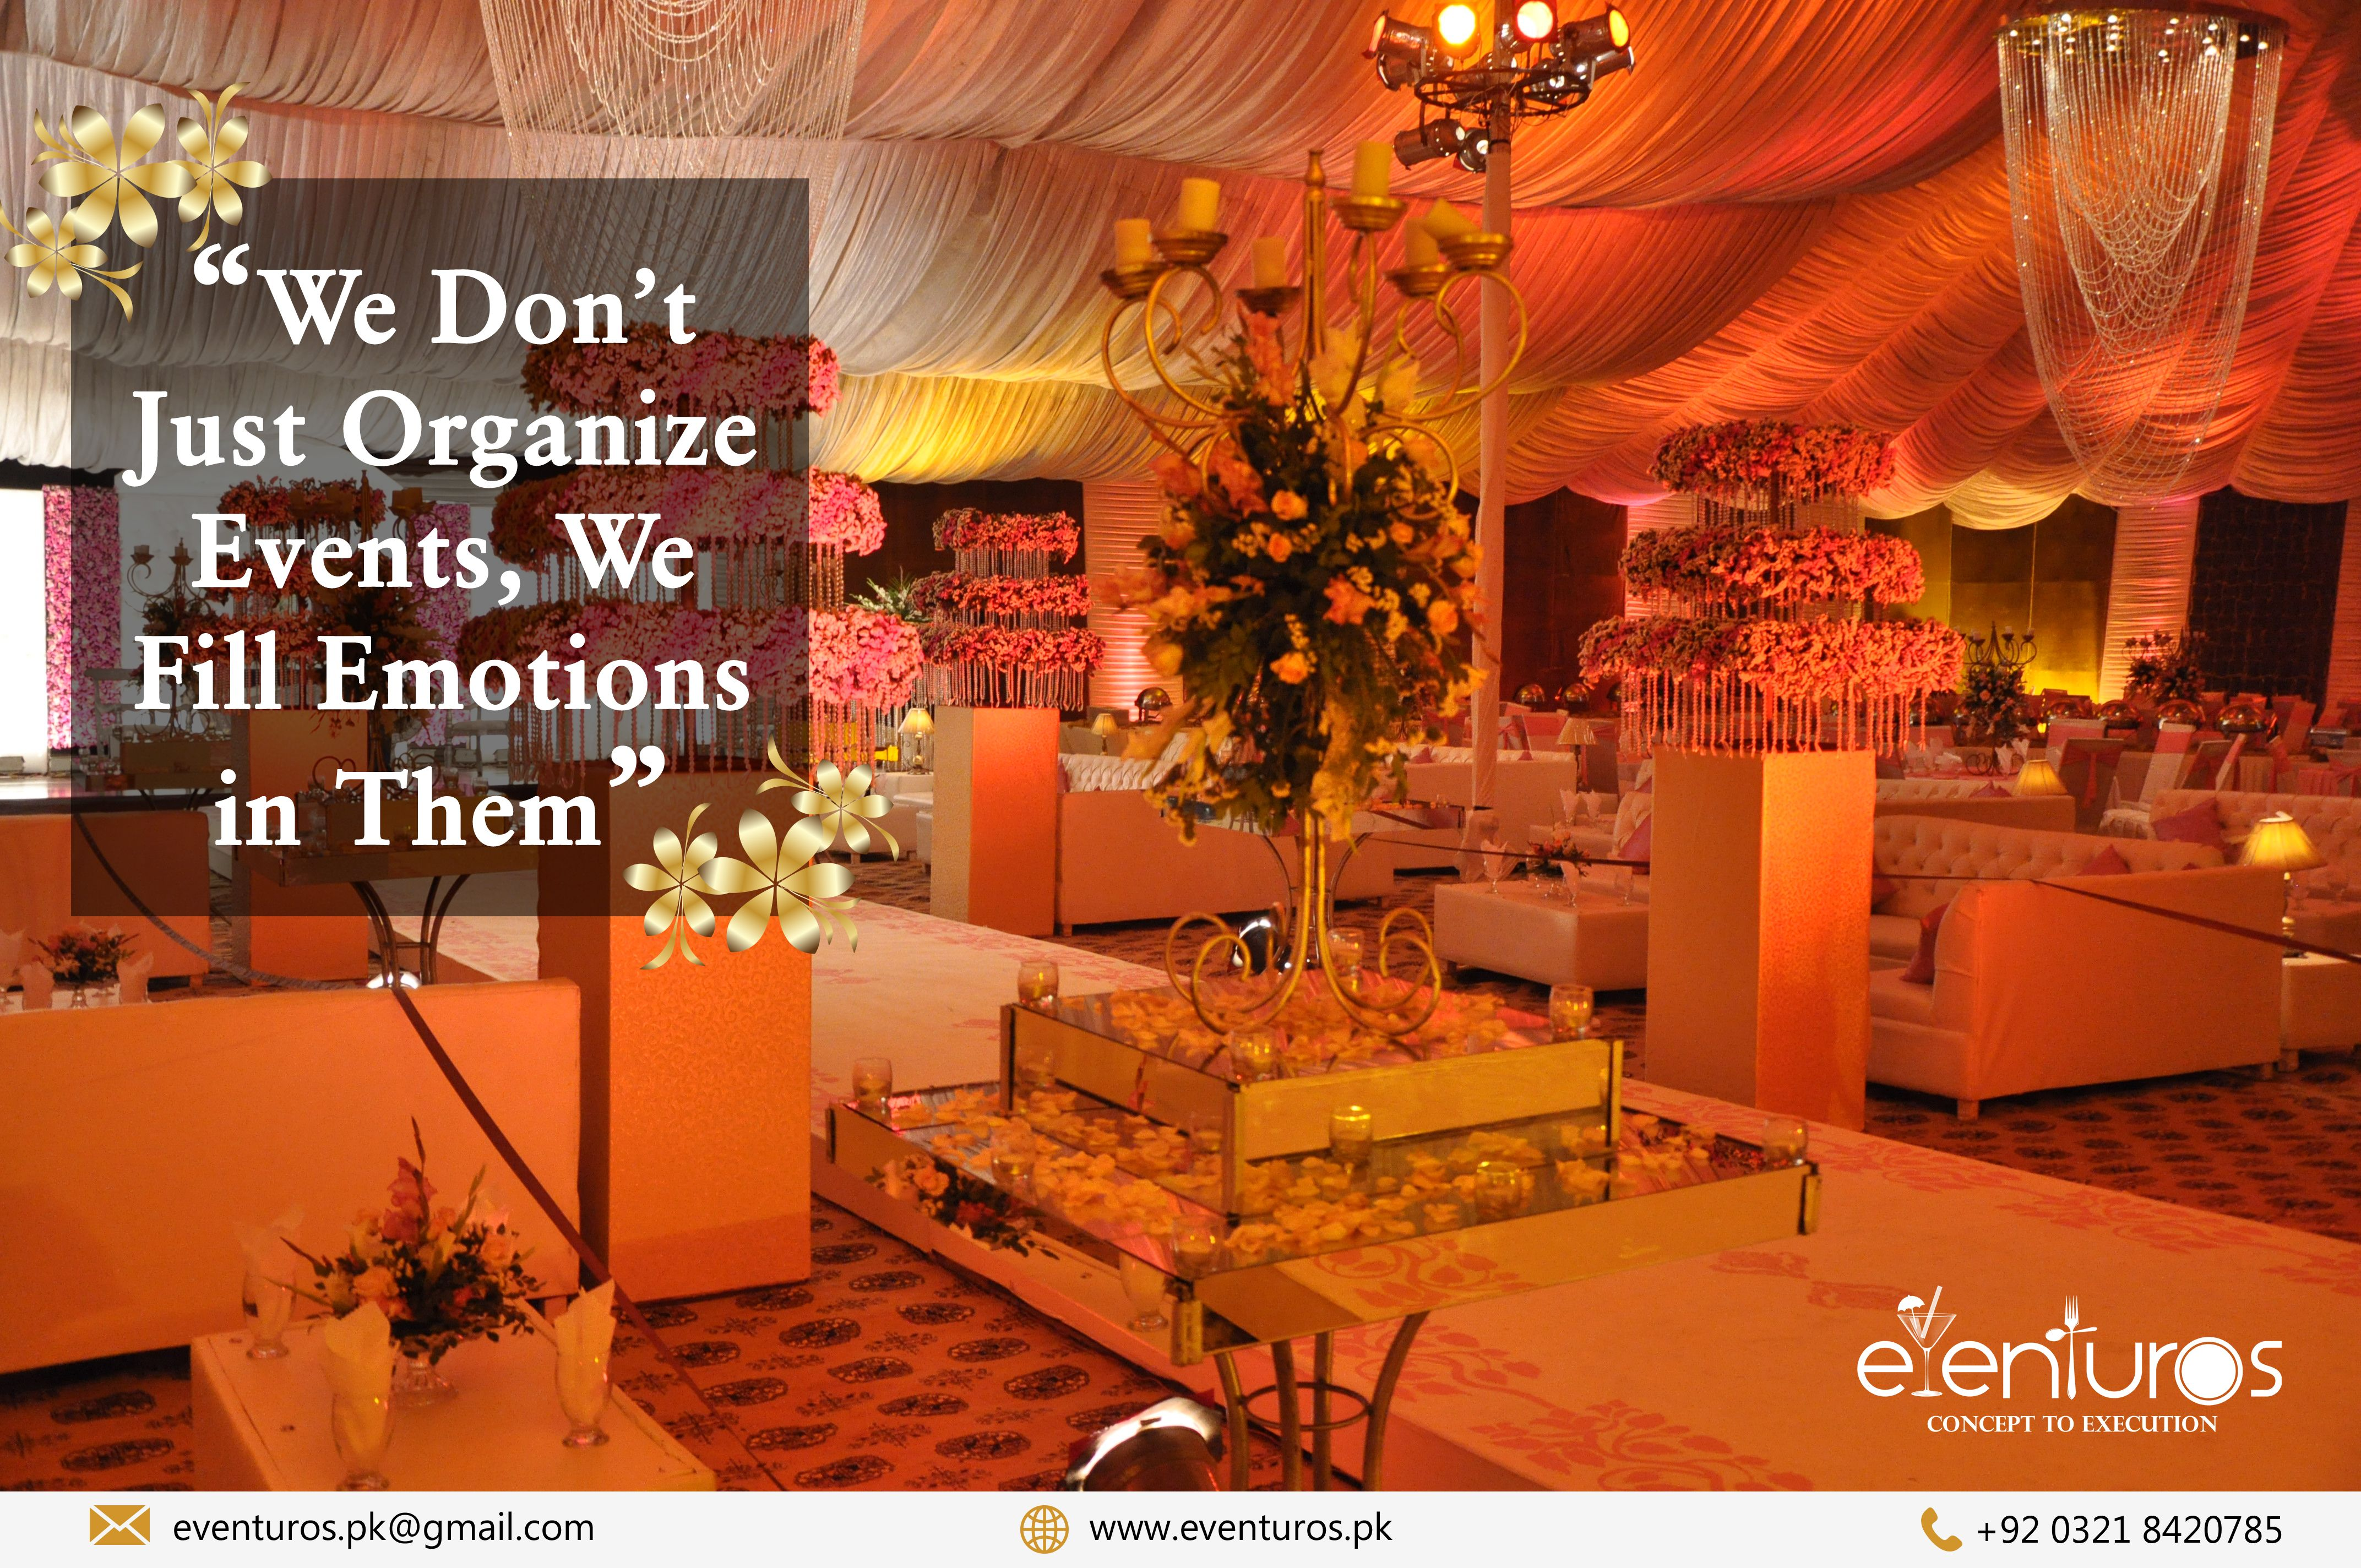 We Don T Just Organize Events We Fill Emotions In Them Book Your Weddings Events Before The Time Ends For Quires C Event Organization Event Management Event